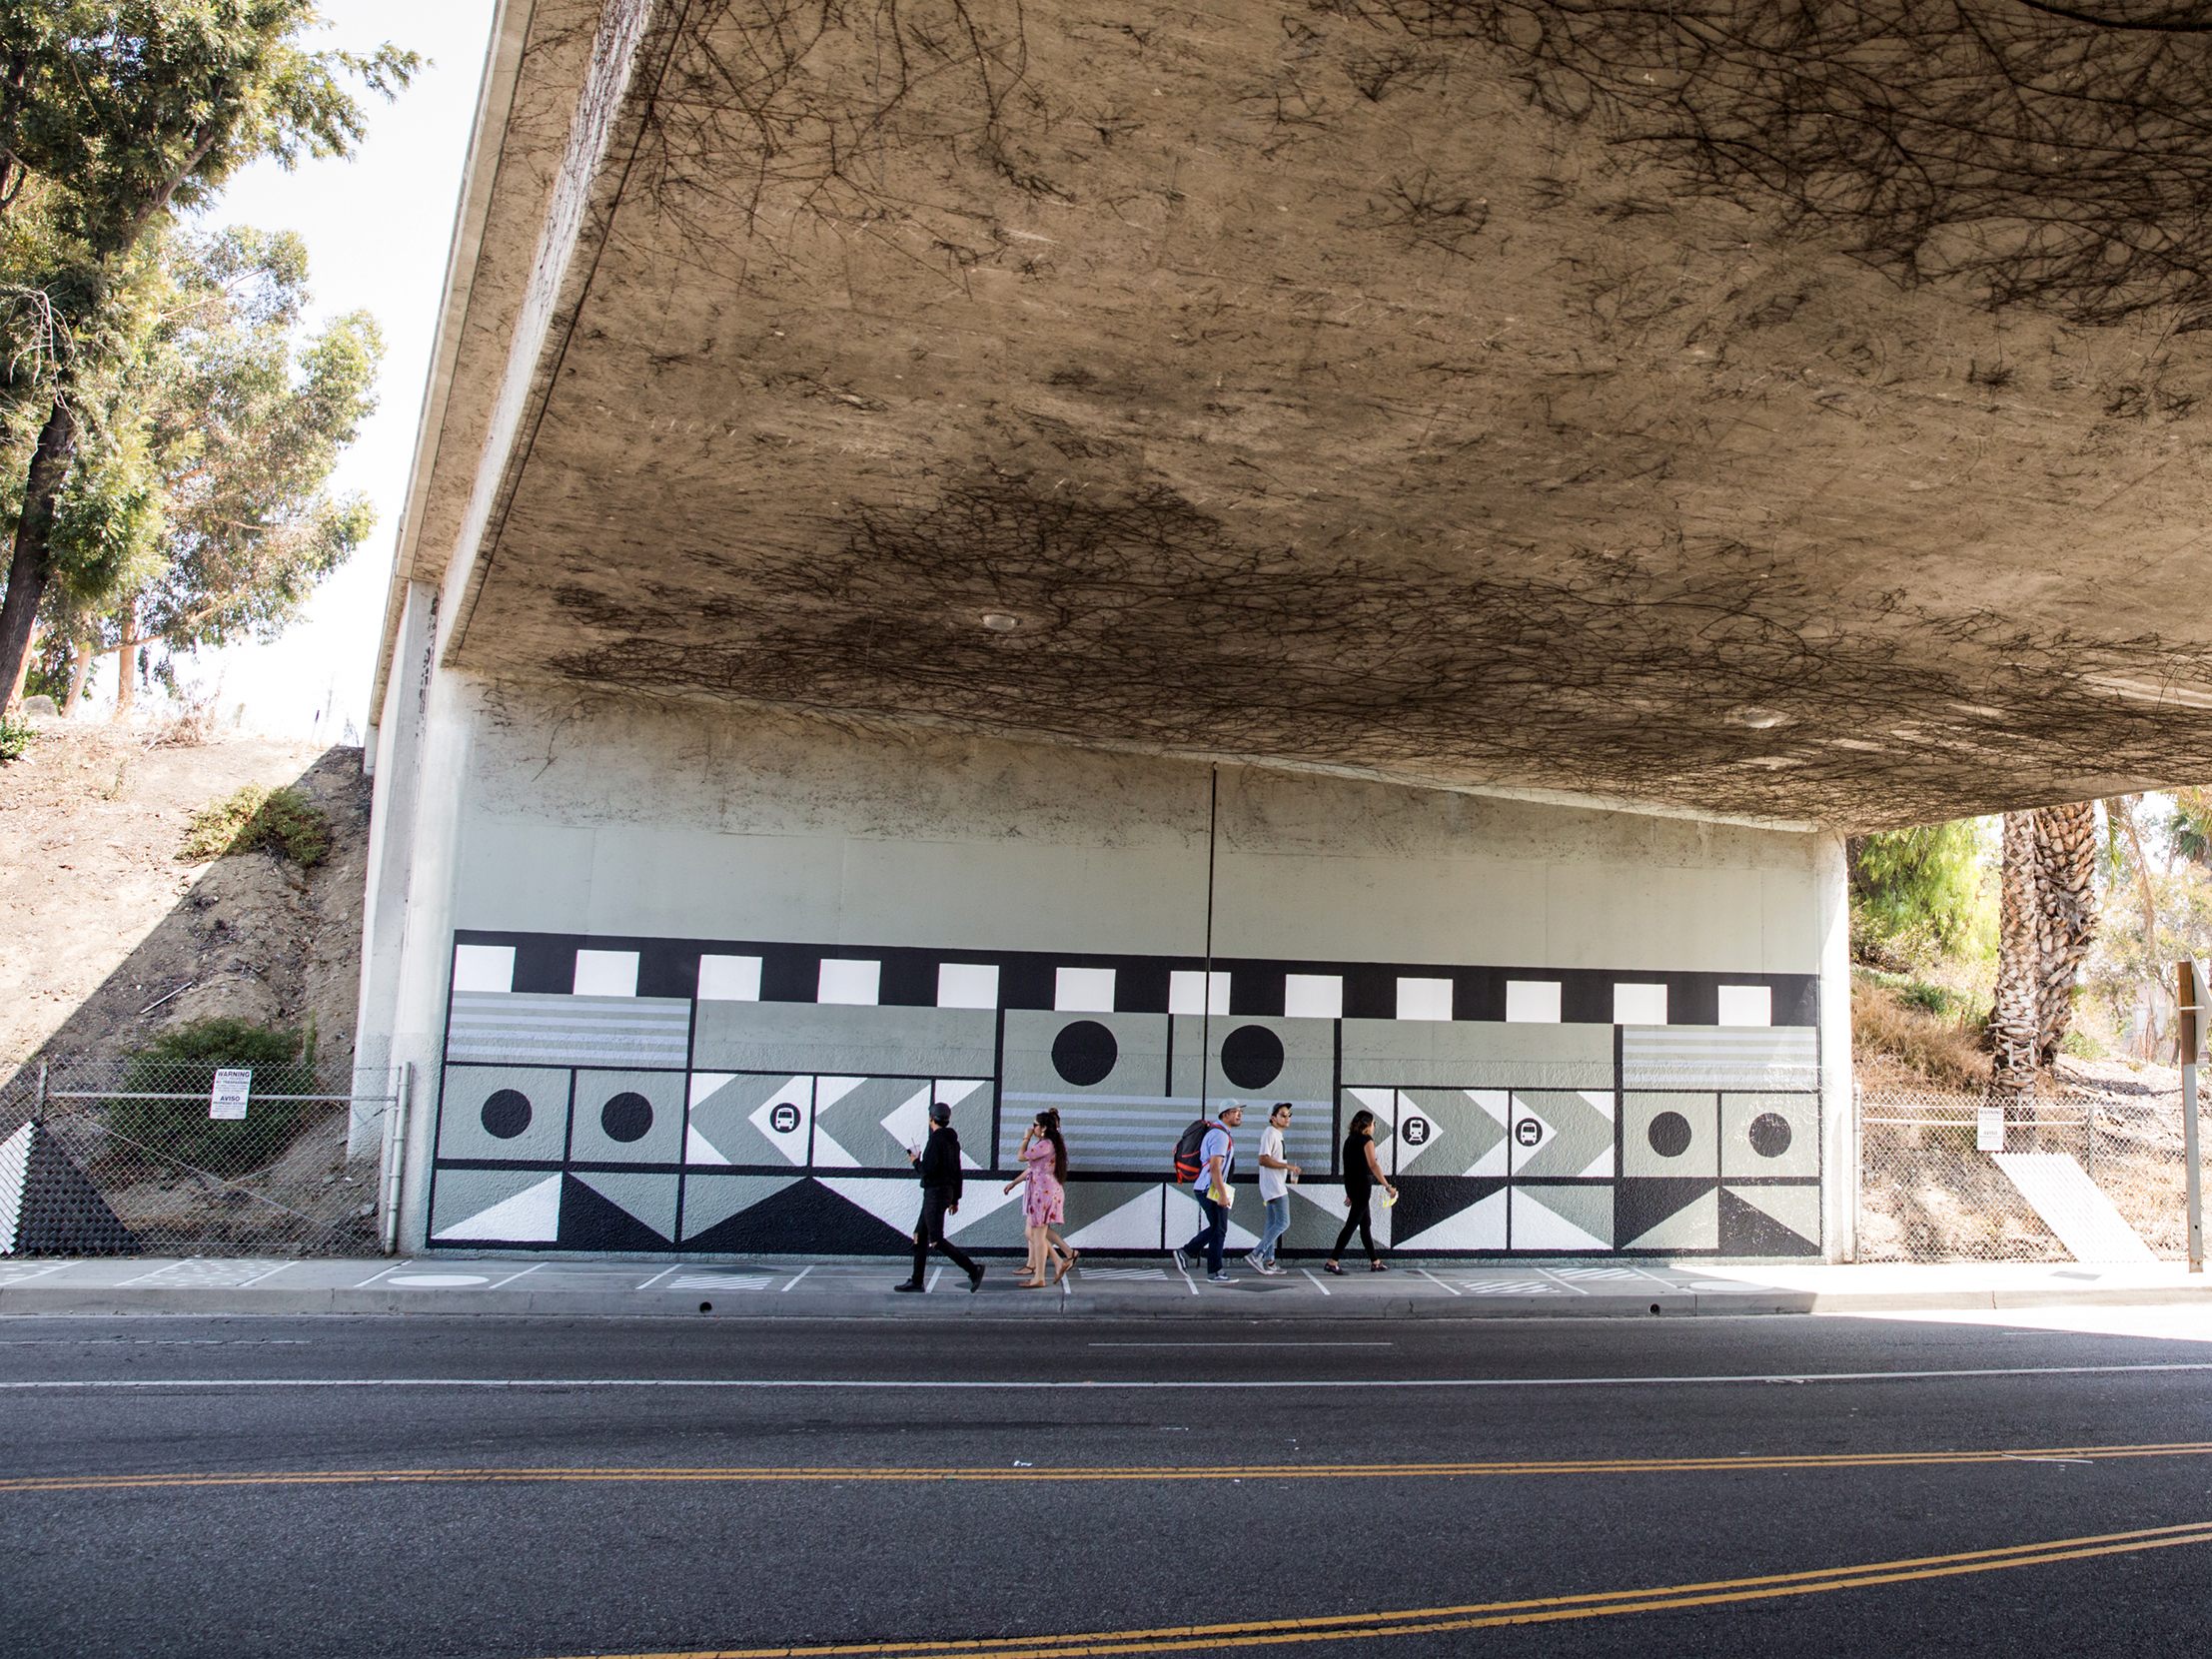 After: Murals on Underpass Walls, Sidewalk Patterning, New Fencing with Fence Weave